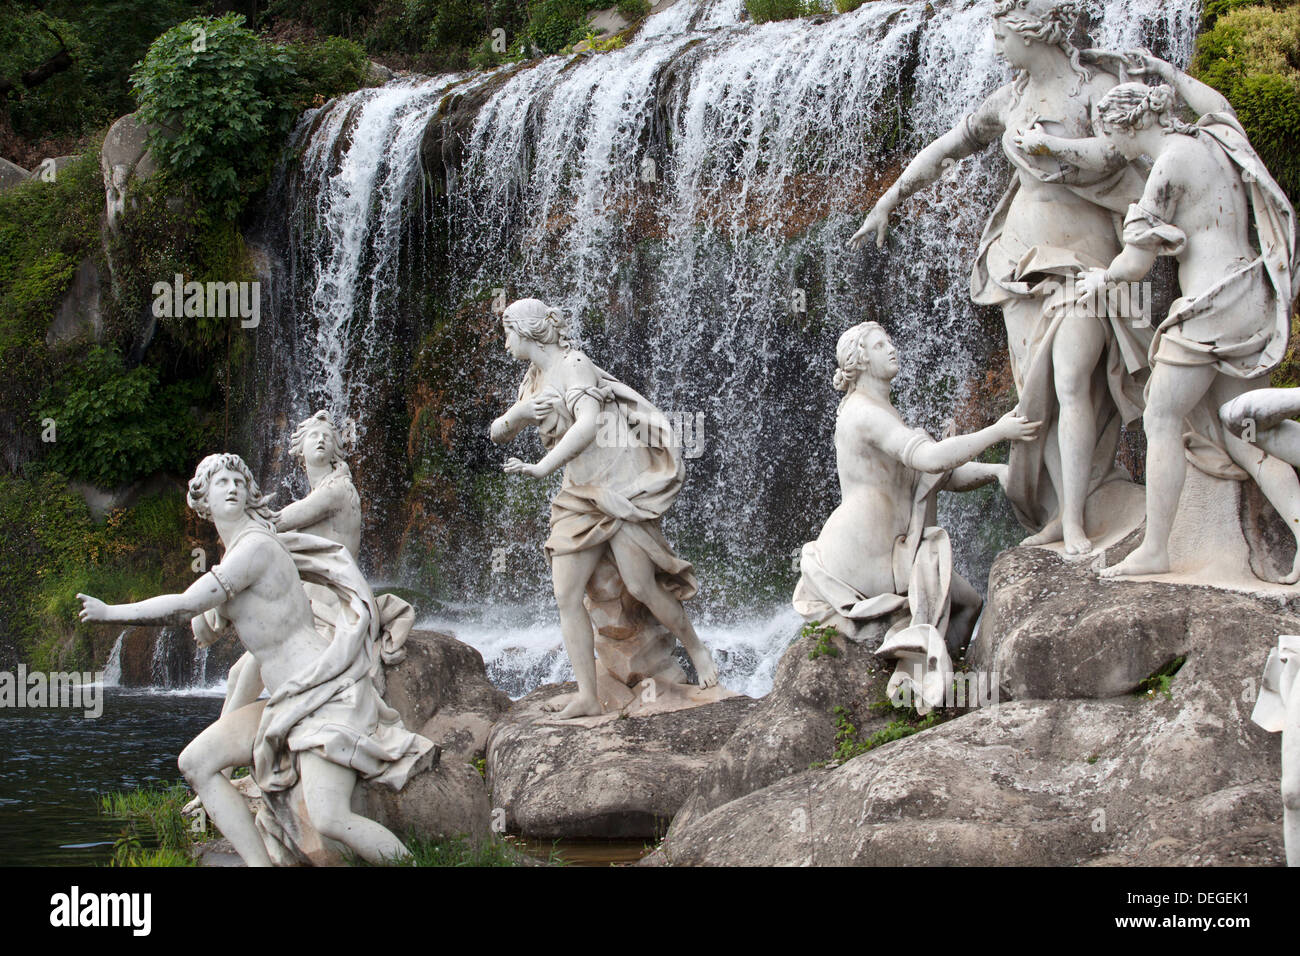 The Diana's waterfalls, Caserta, Campania, Italy, Europe Stock Photo